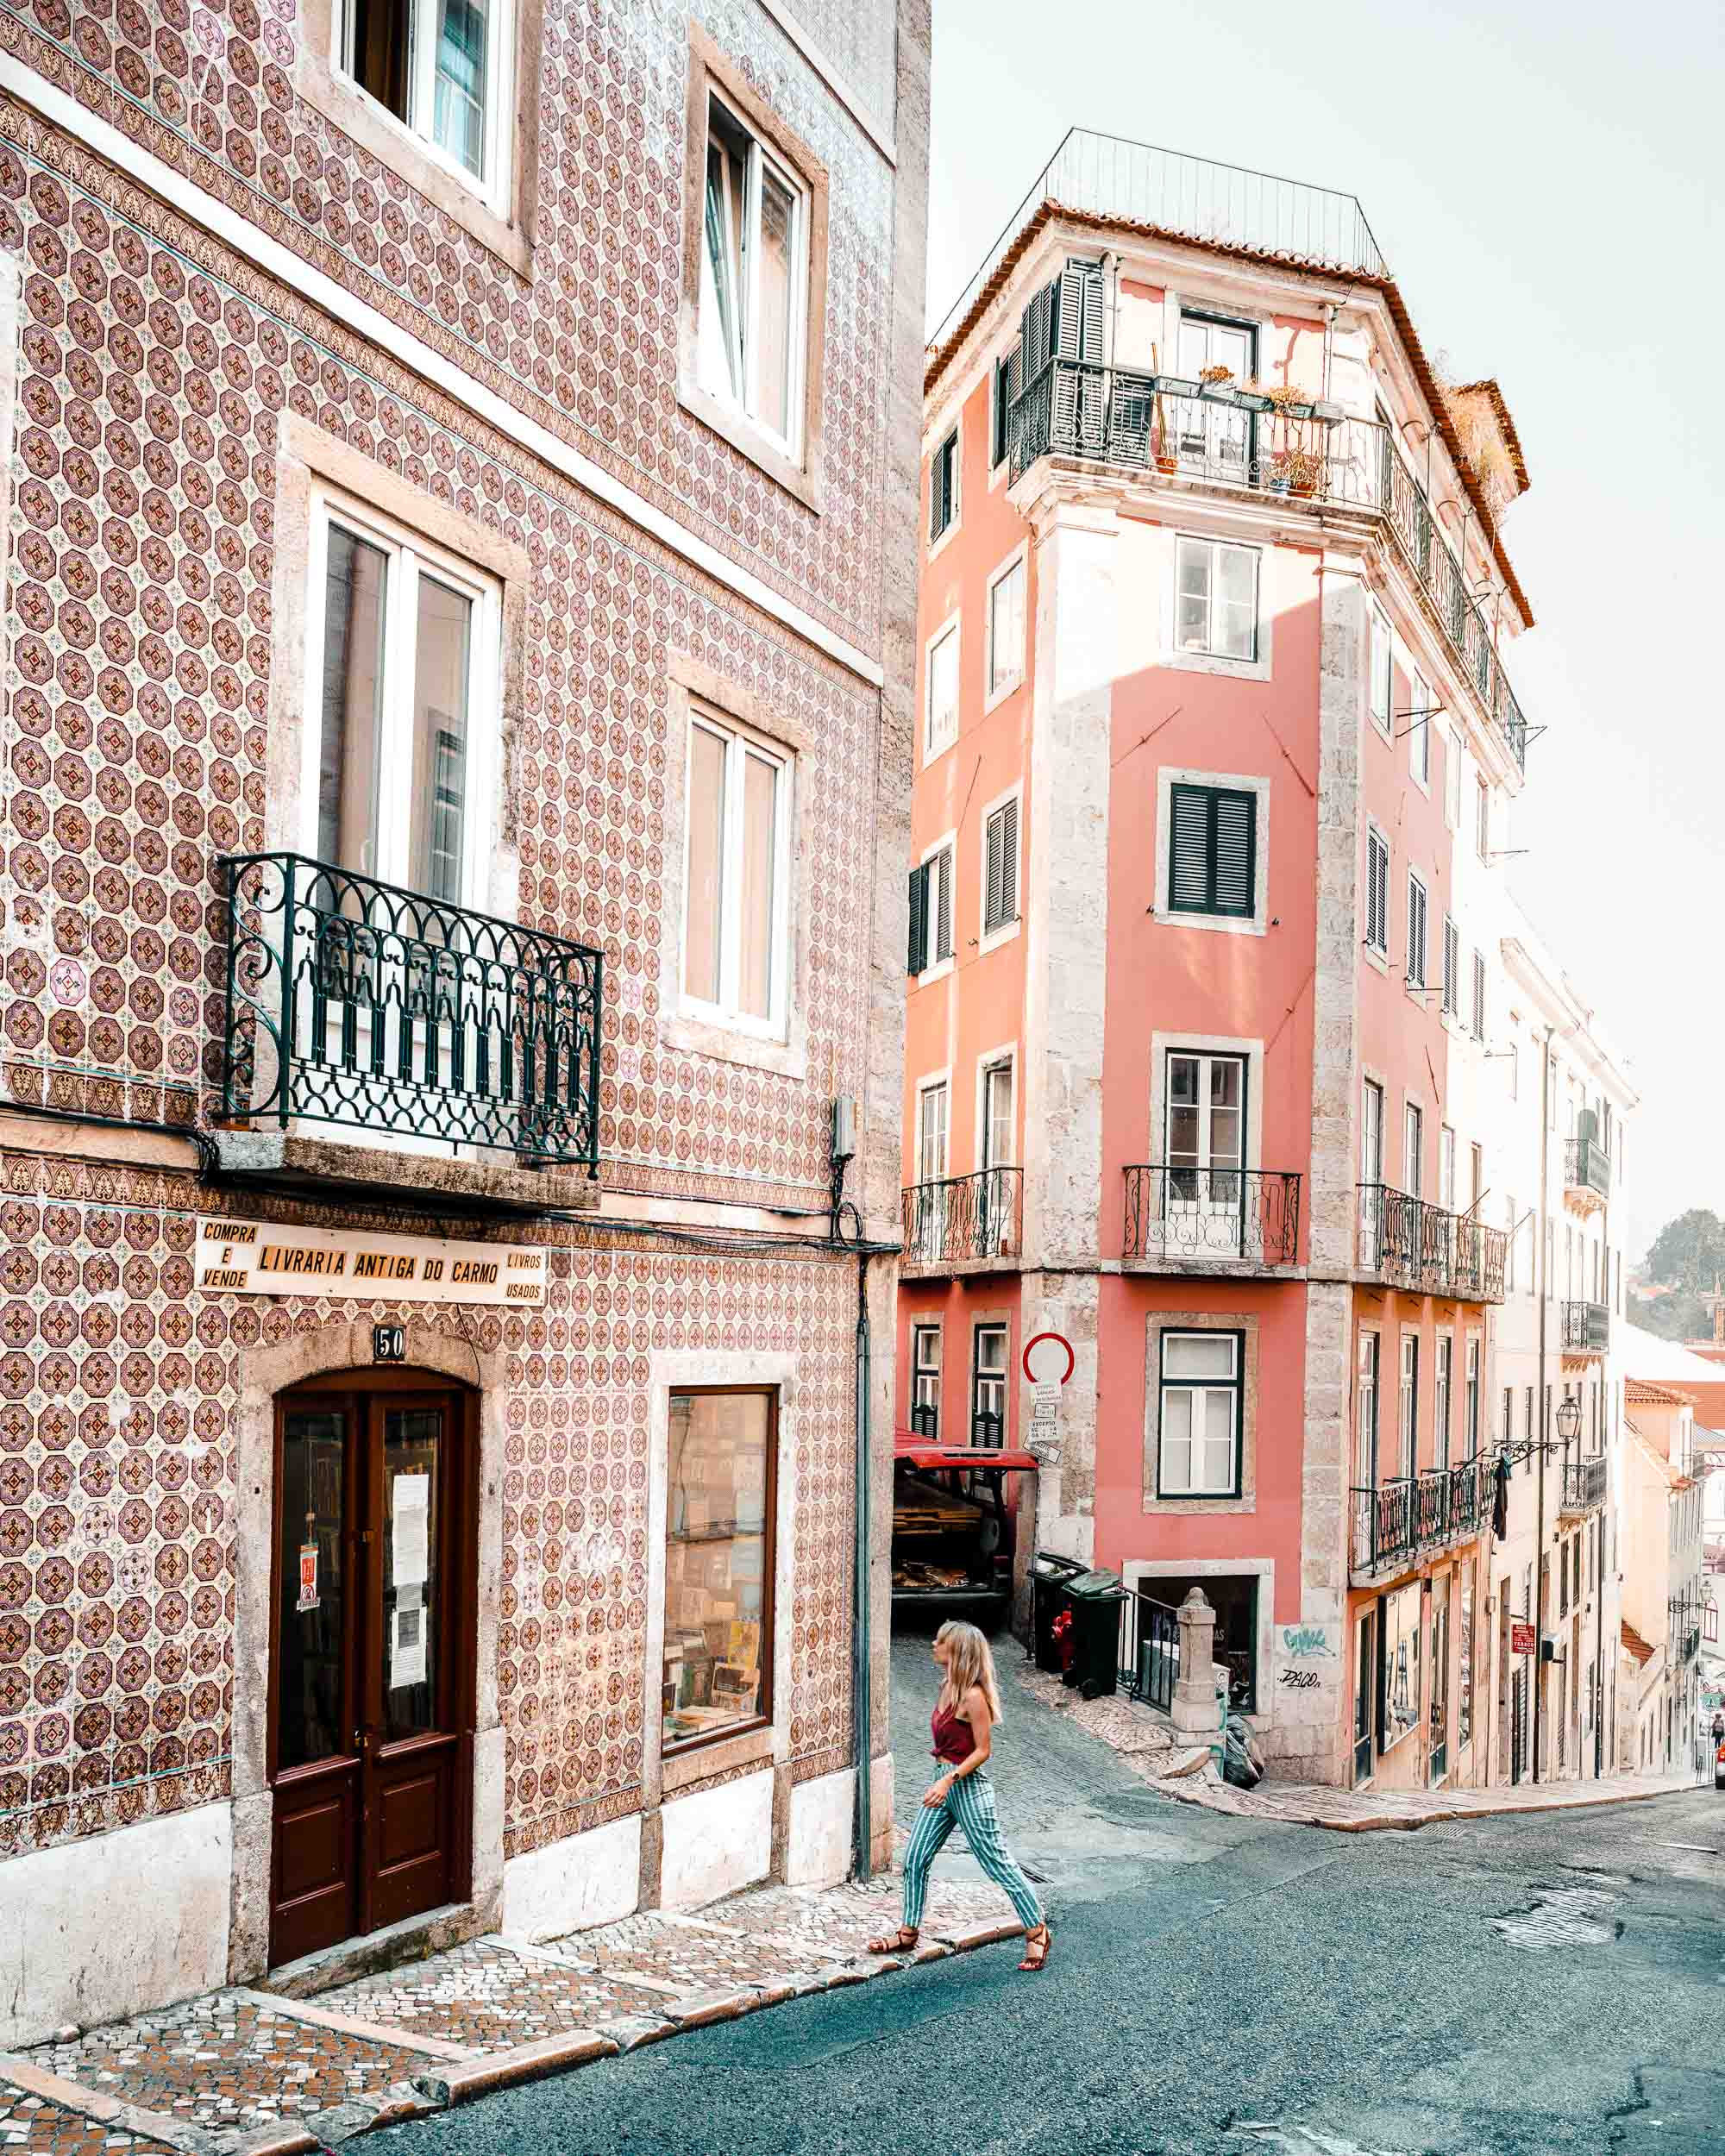 Travel blogger Selena Taylor exploring the colorful tiled houses of Lisbon, Portugal | Lisbon Travel Guide via Find Us Lost